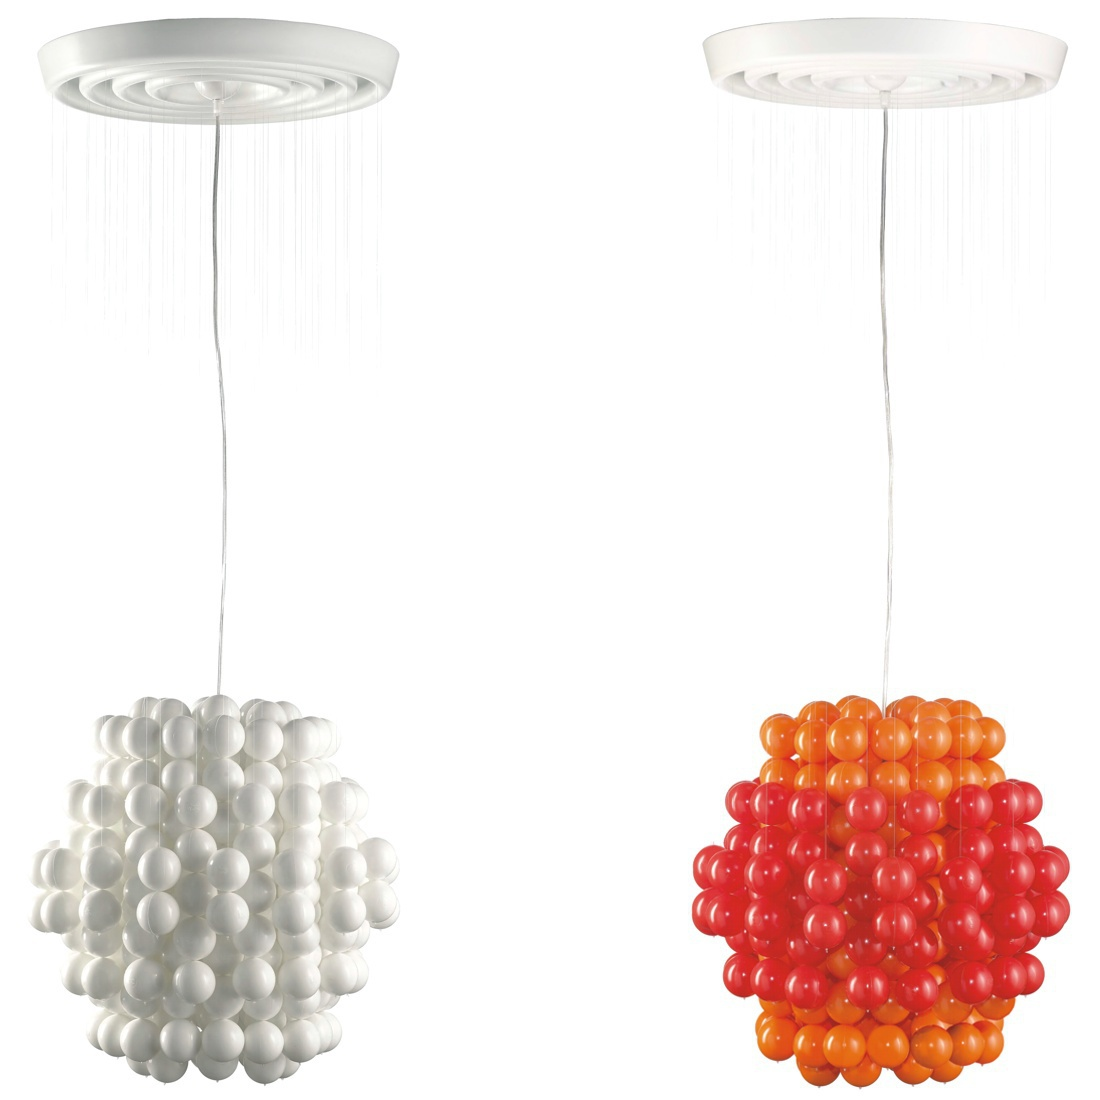 verner panton lighting. Verner Panton Lighting